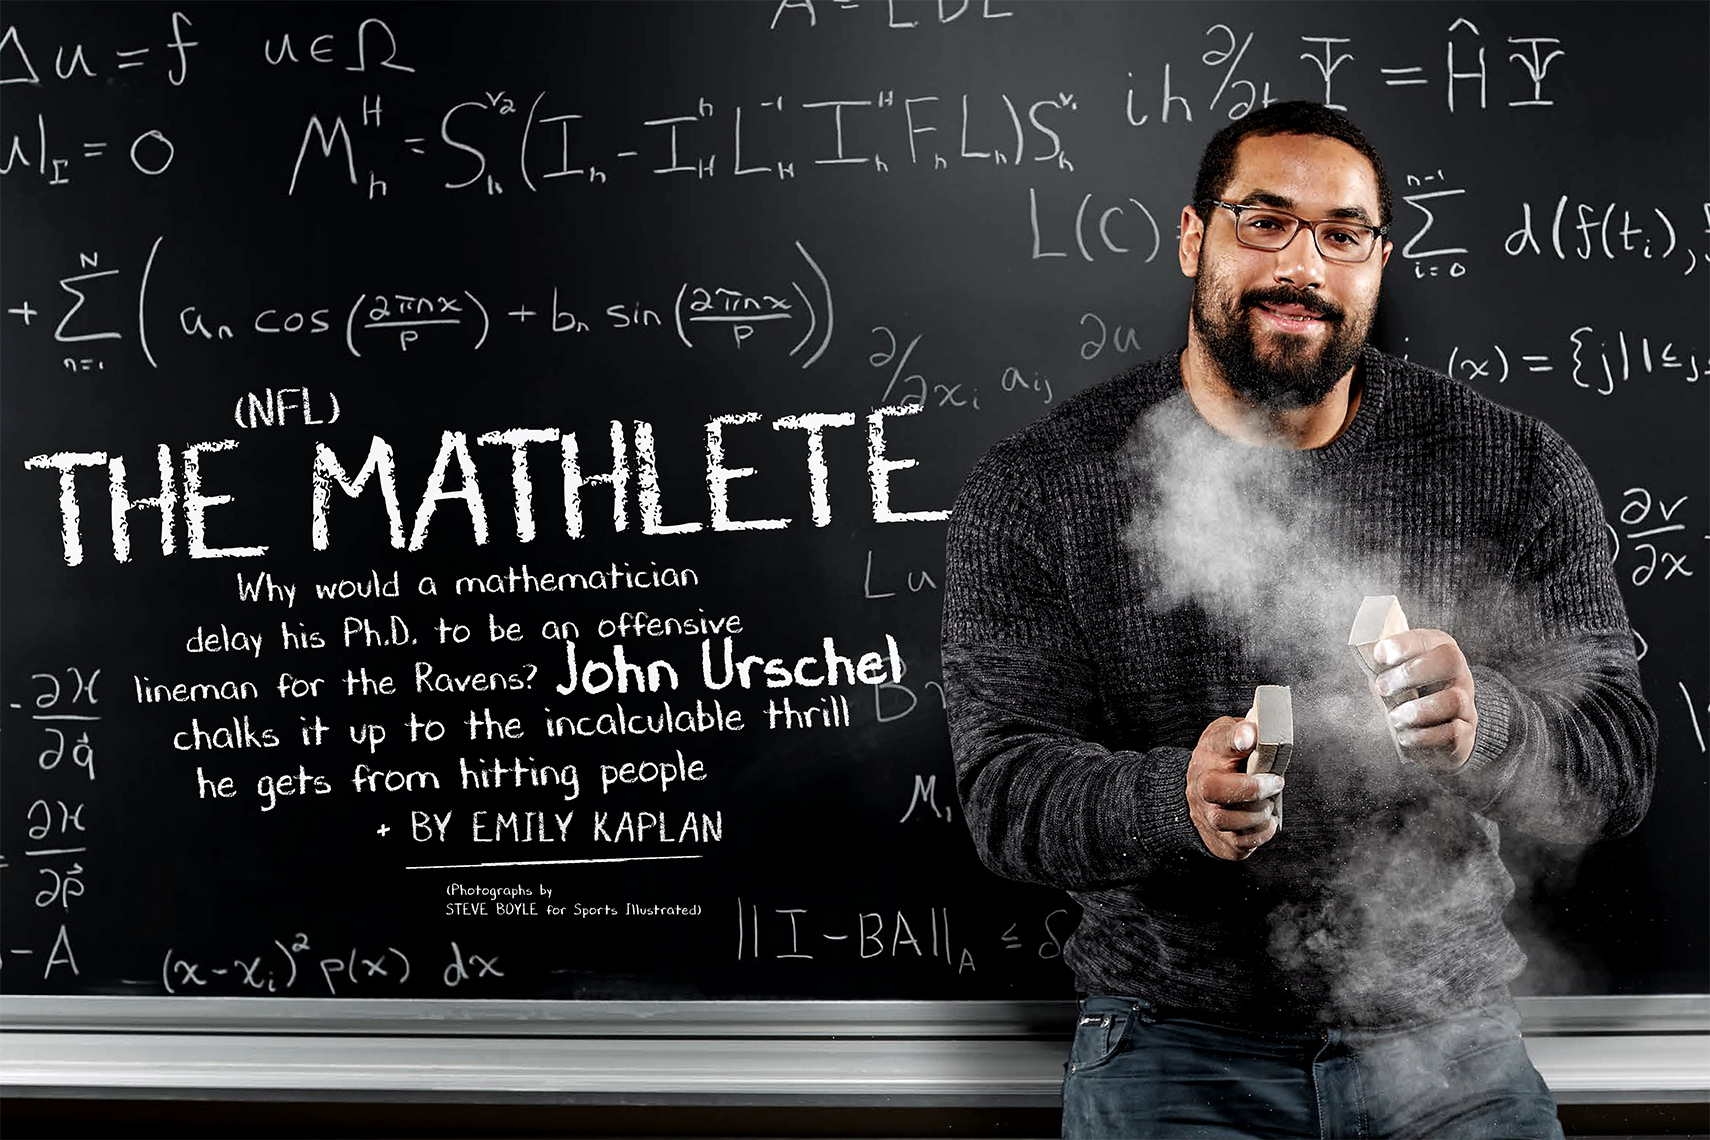 Sports Photographer STEVE BOYLE - John Urschel for Sports Illustrated